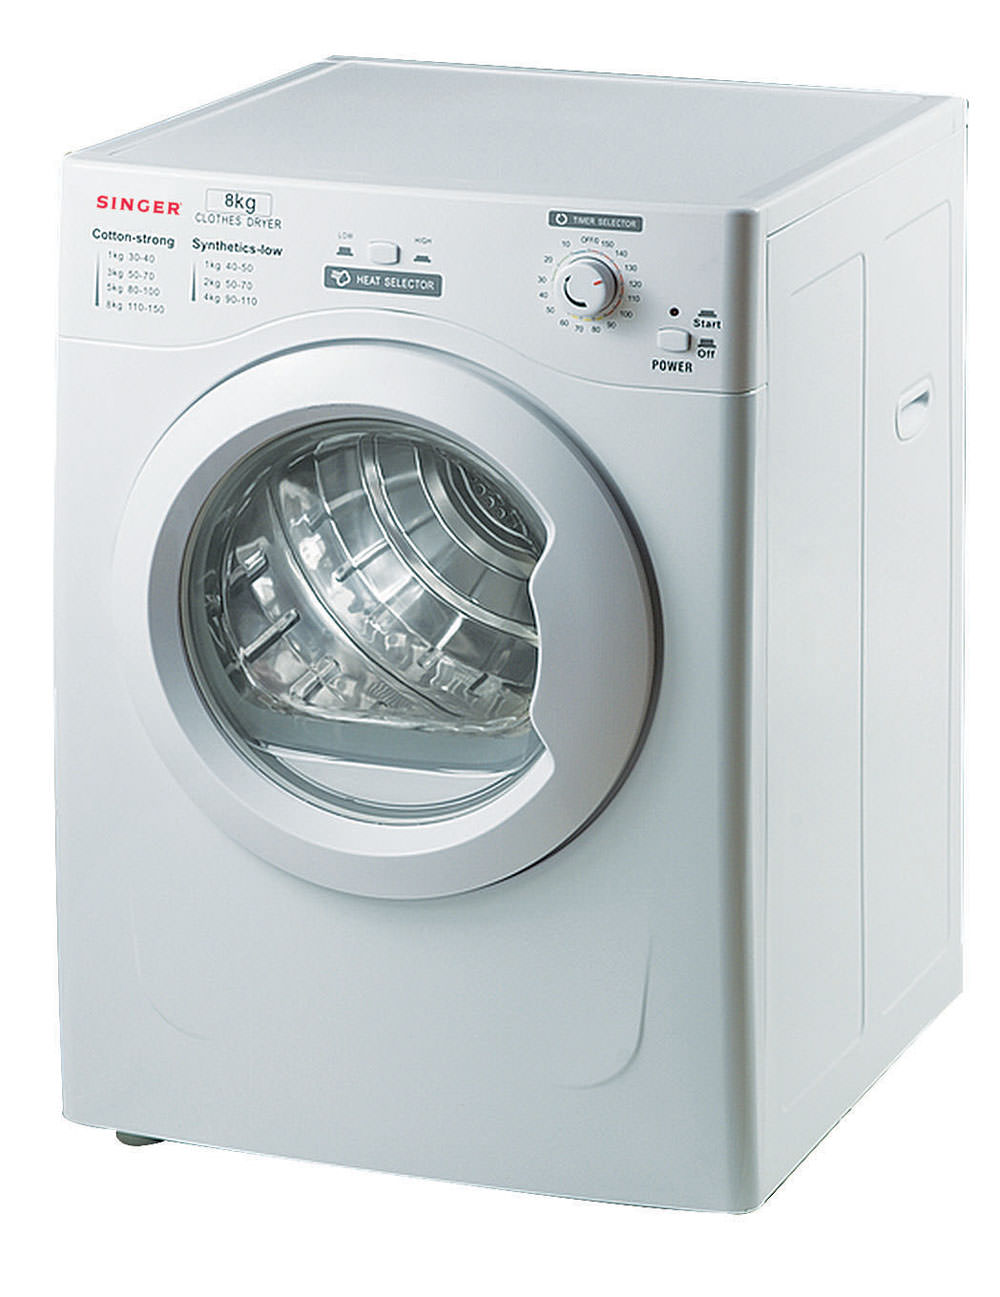 Ordinary Cheap Washer Dryer Uk Part - 10: You Are Here. Home» Washing Machine» Dryer